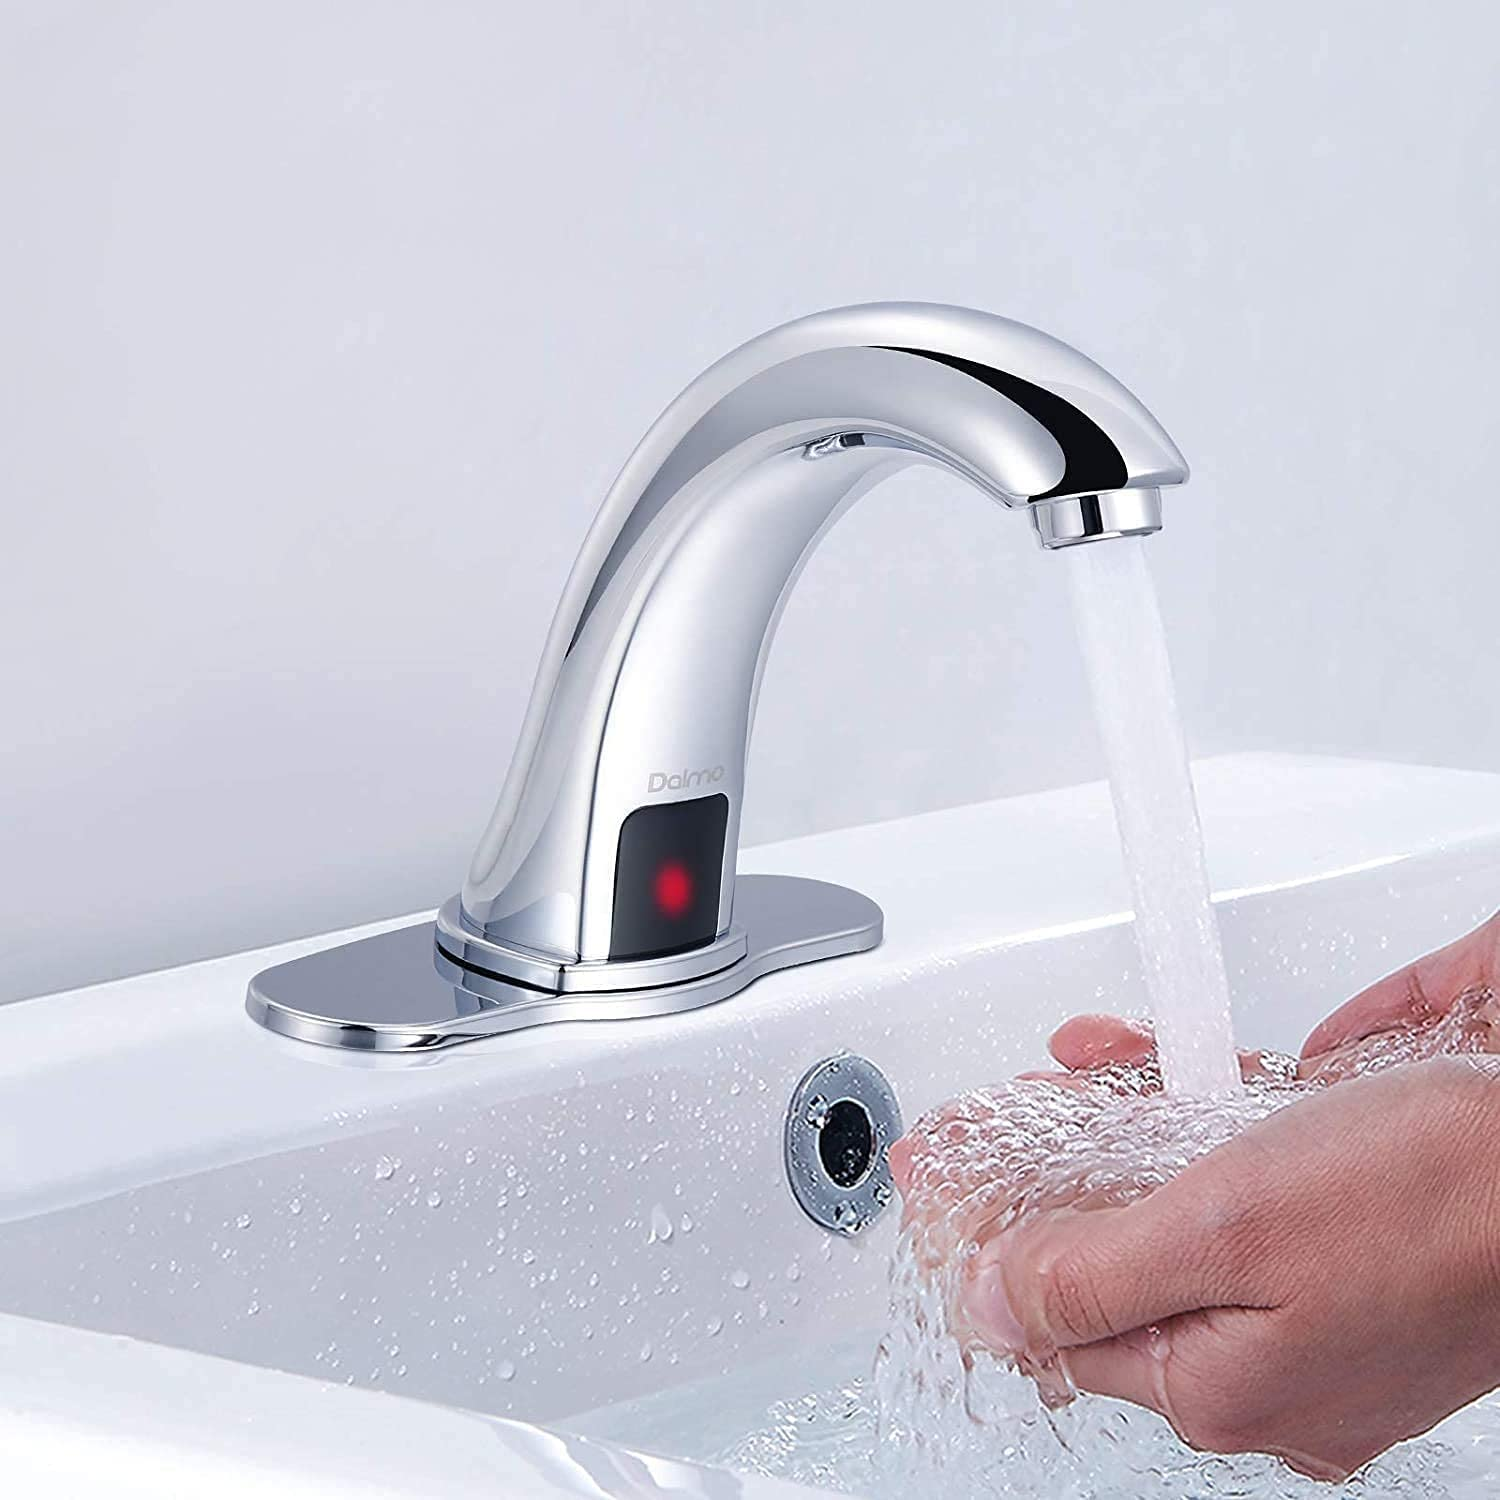 Dalmo Automatic Sensor Touchless Bathroom Sink Faucet with Hole Cover Plate, Chrome Hands Free Bathroom Water Tap with Control Box and Temperature Mixer, 1-Hole/3-Hole Vanity Faucet, Battery Powered: Home Improvement